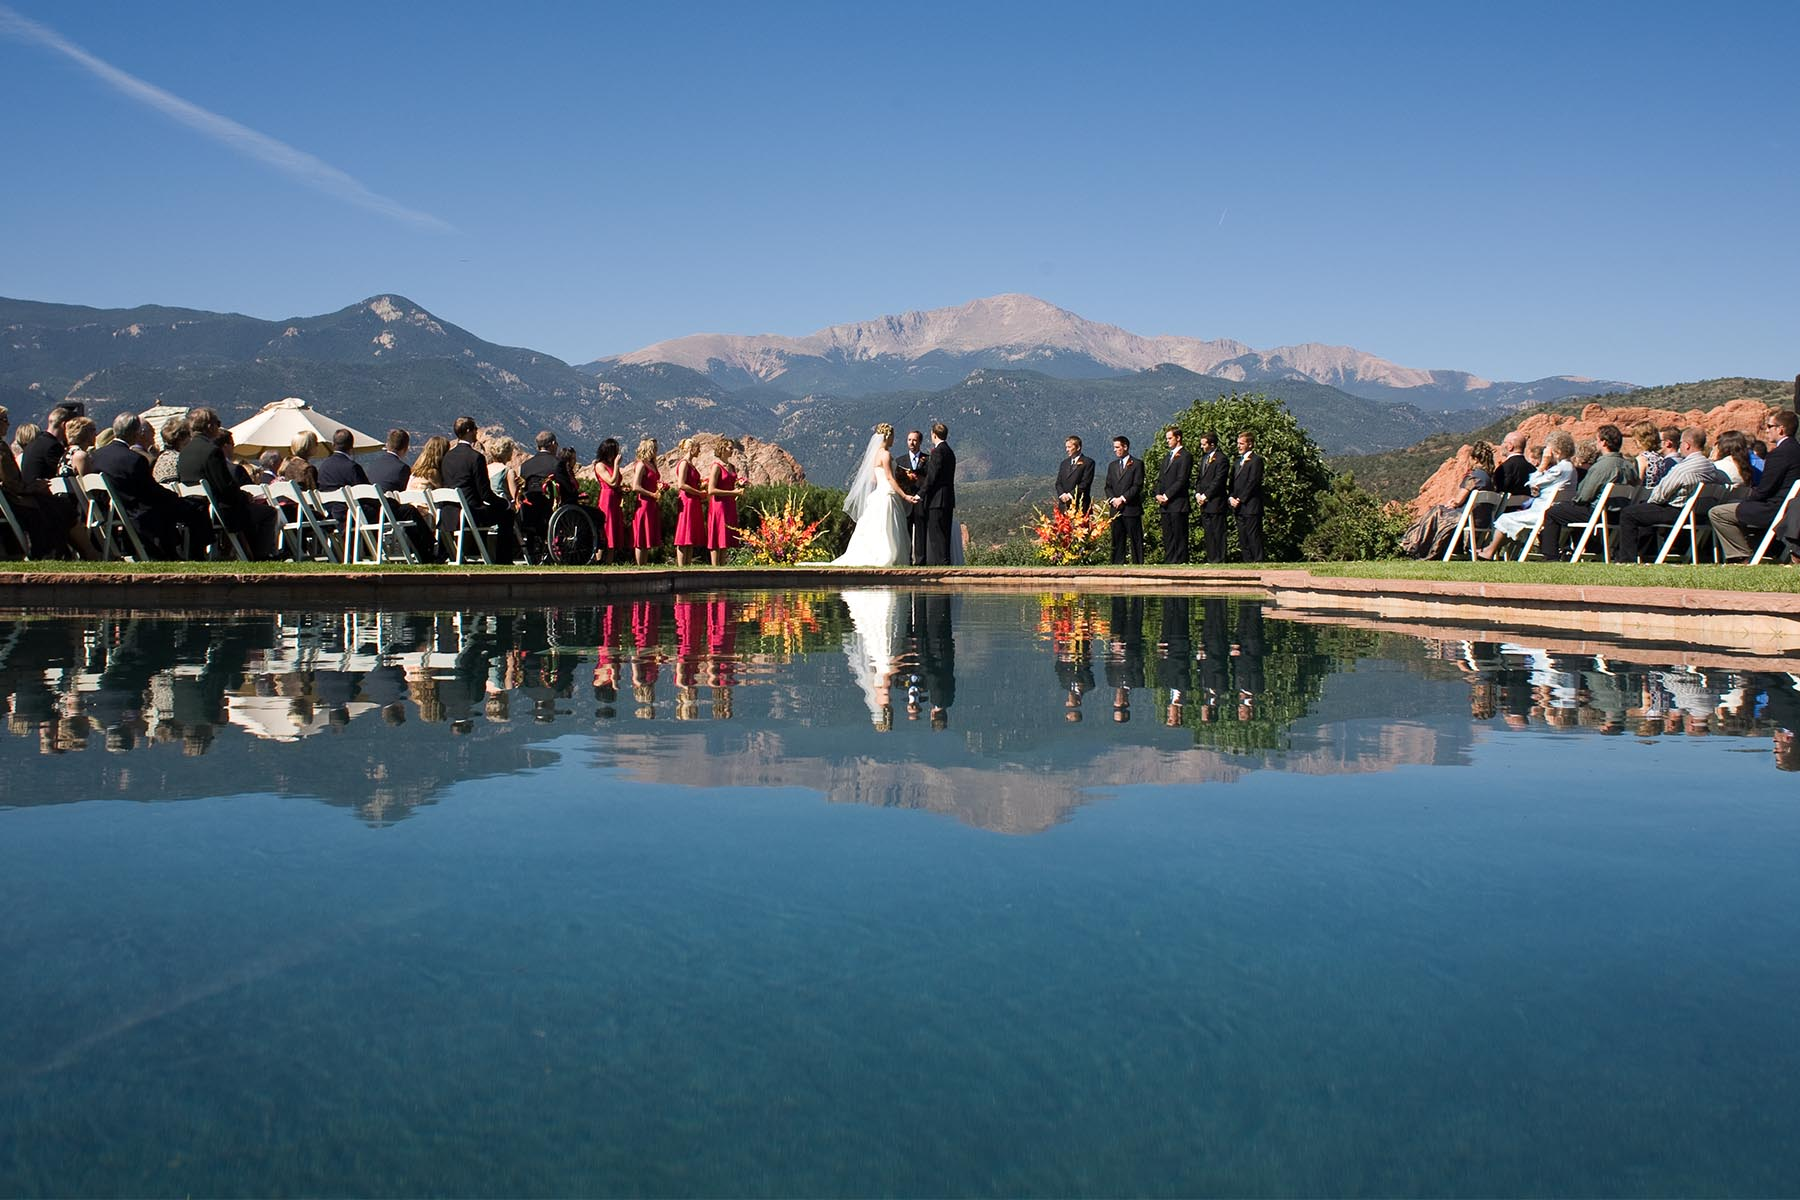 Wedding ceremony in front of the reflection pool at the Garden of the Gods Club.